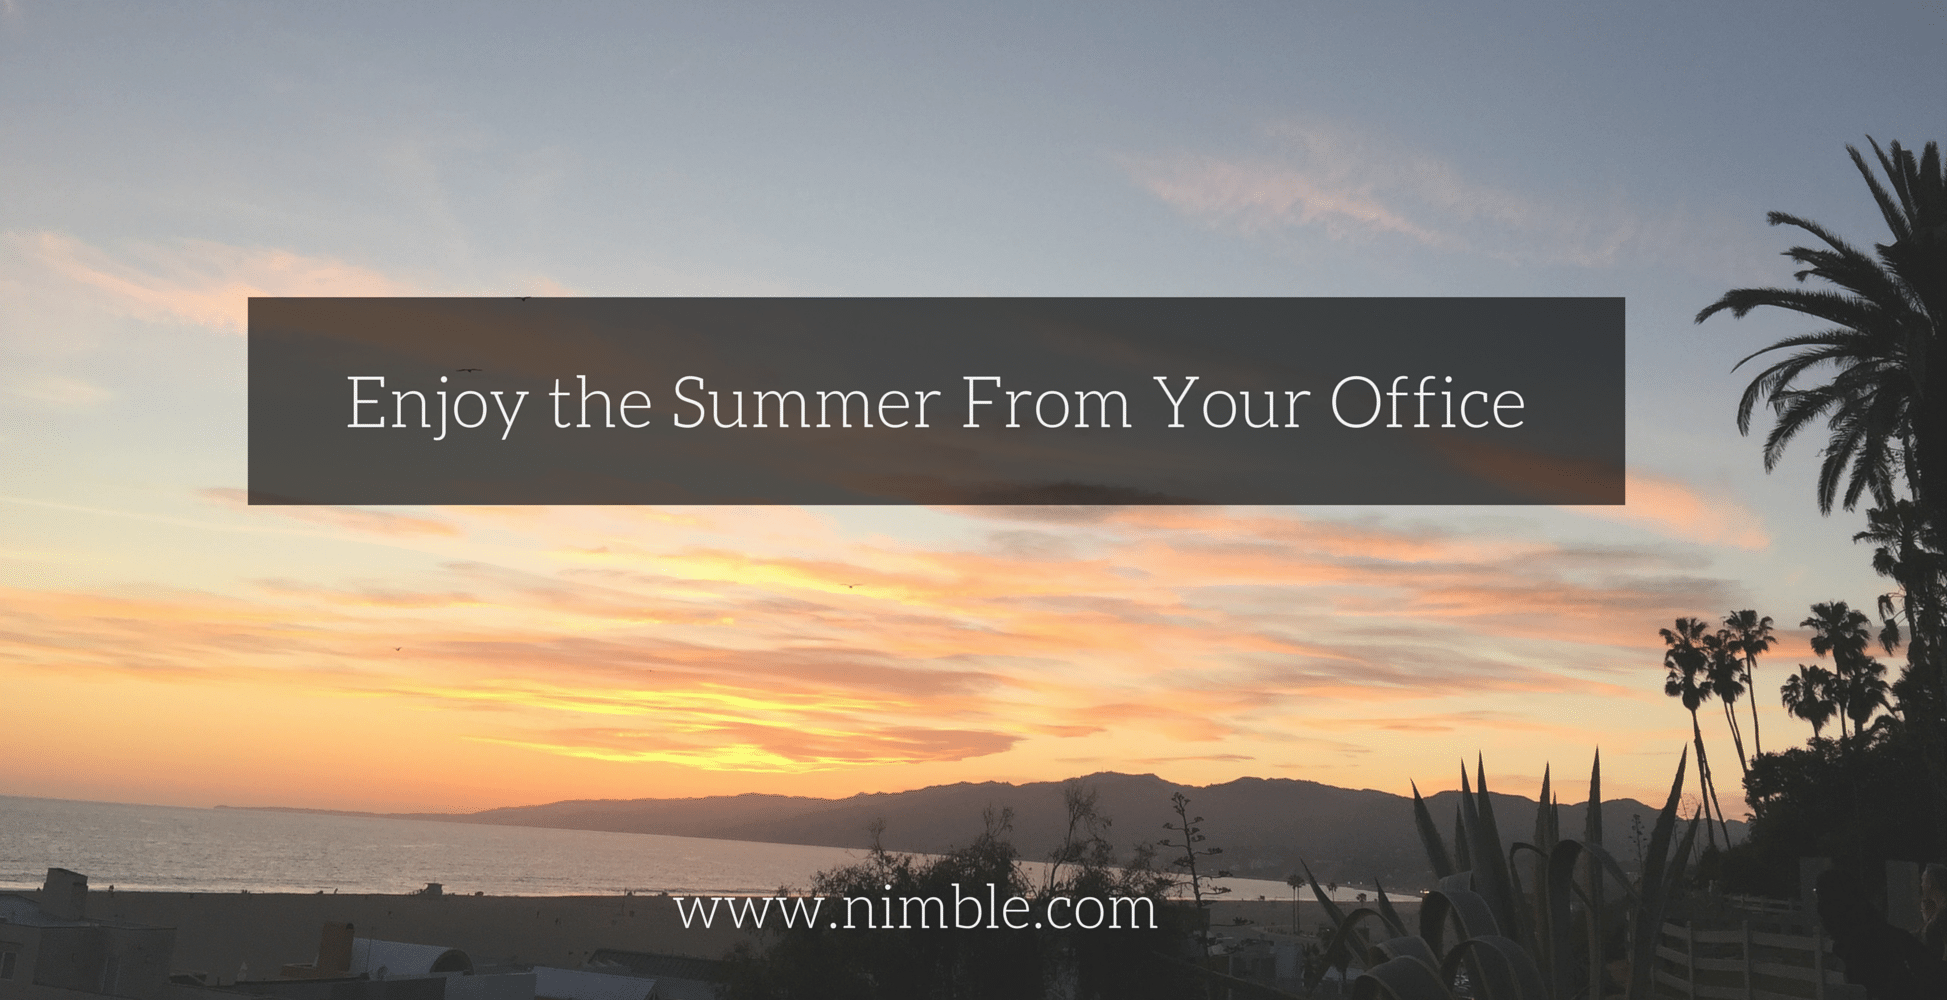 Enjoy the Summer From Your Office